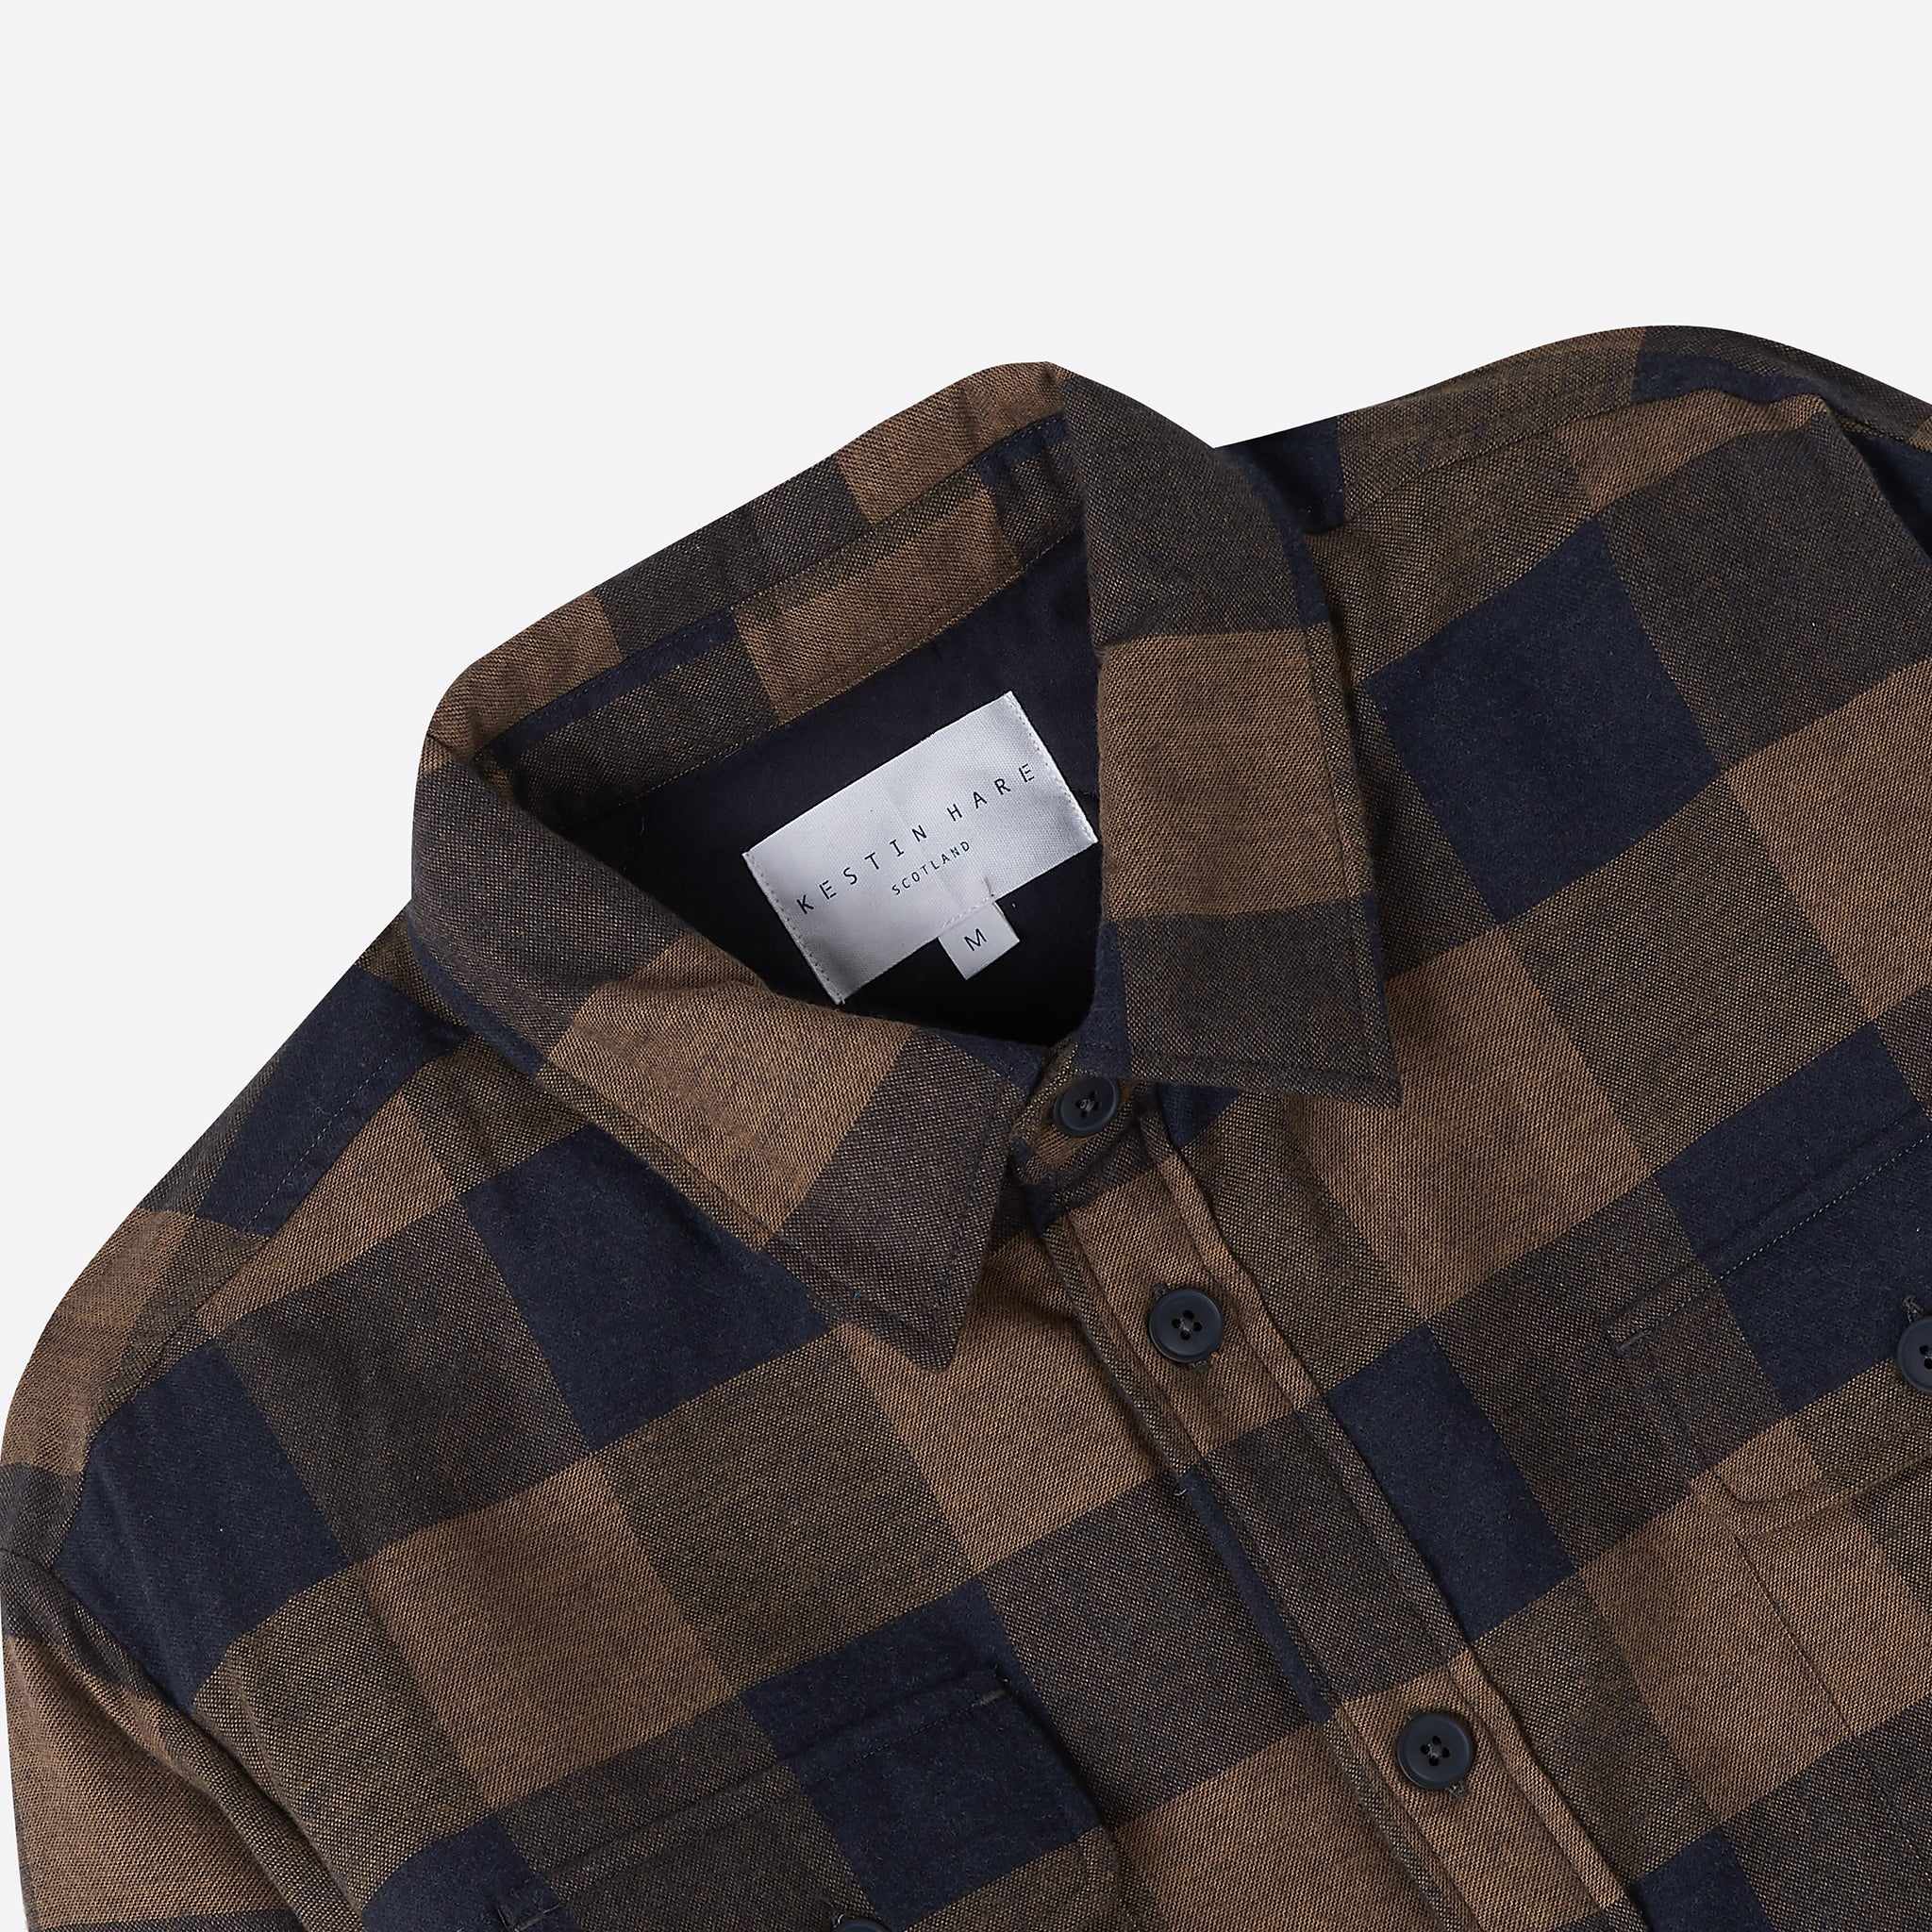 Kestin Hare Haston Shirt Jacket in Tobacco and Navy